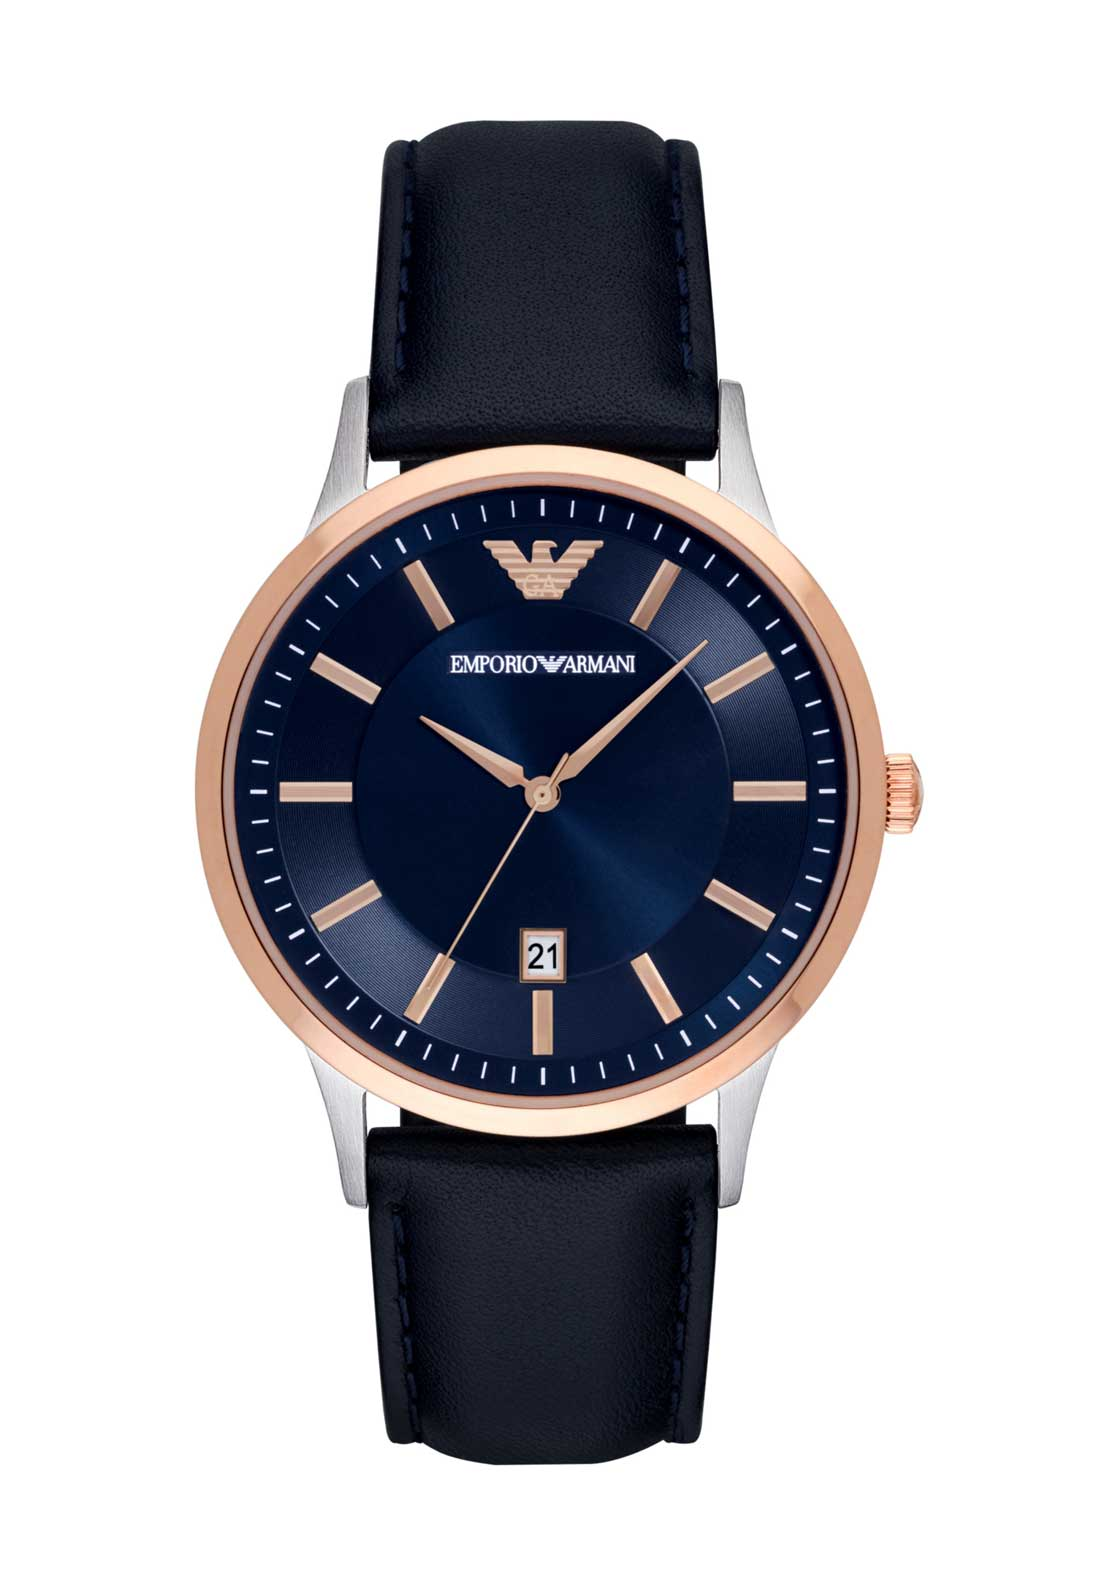 Emporio Armani Mens Classic Leather Strap Watch, Navy